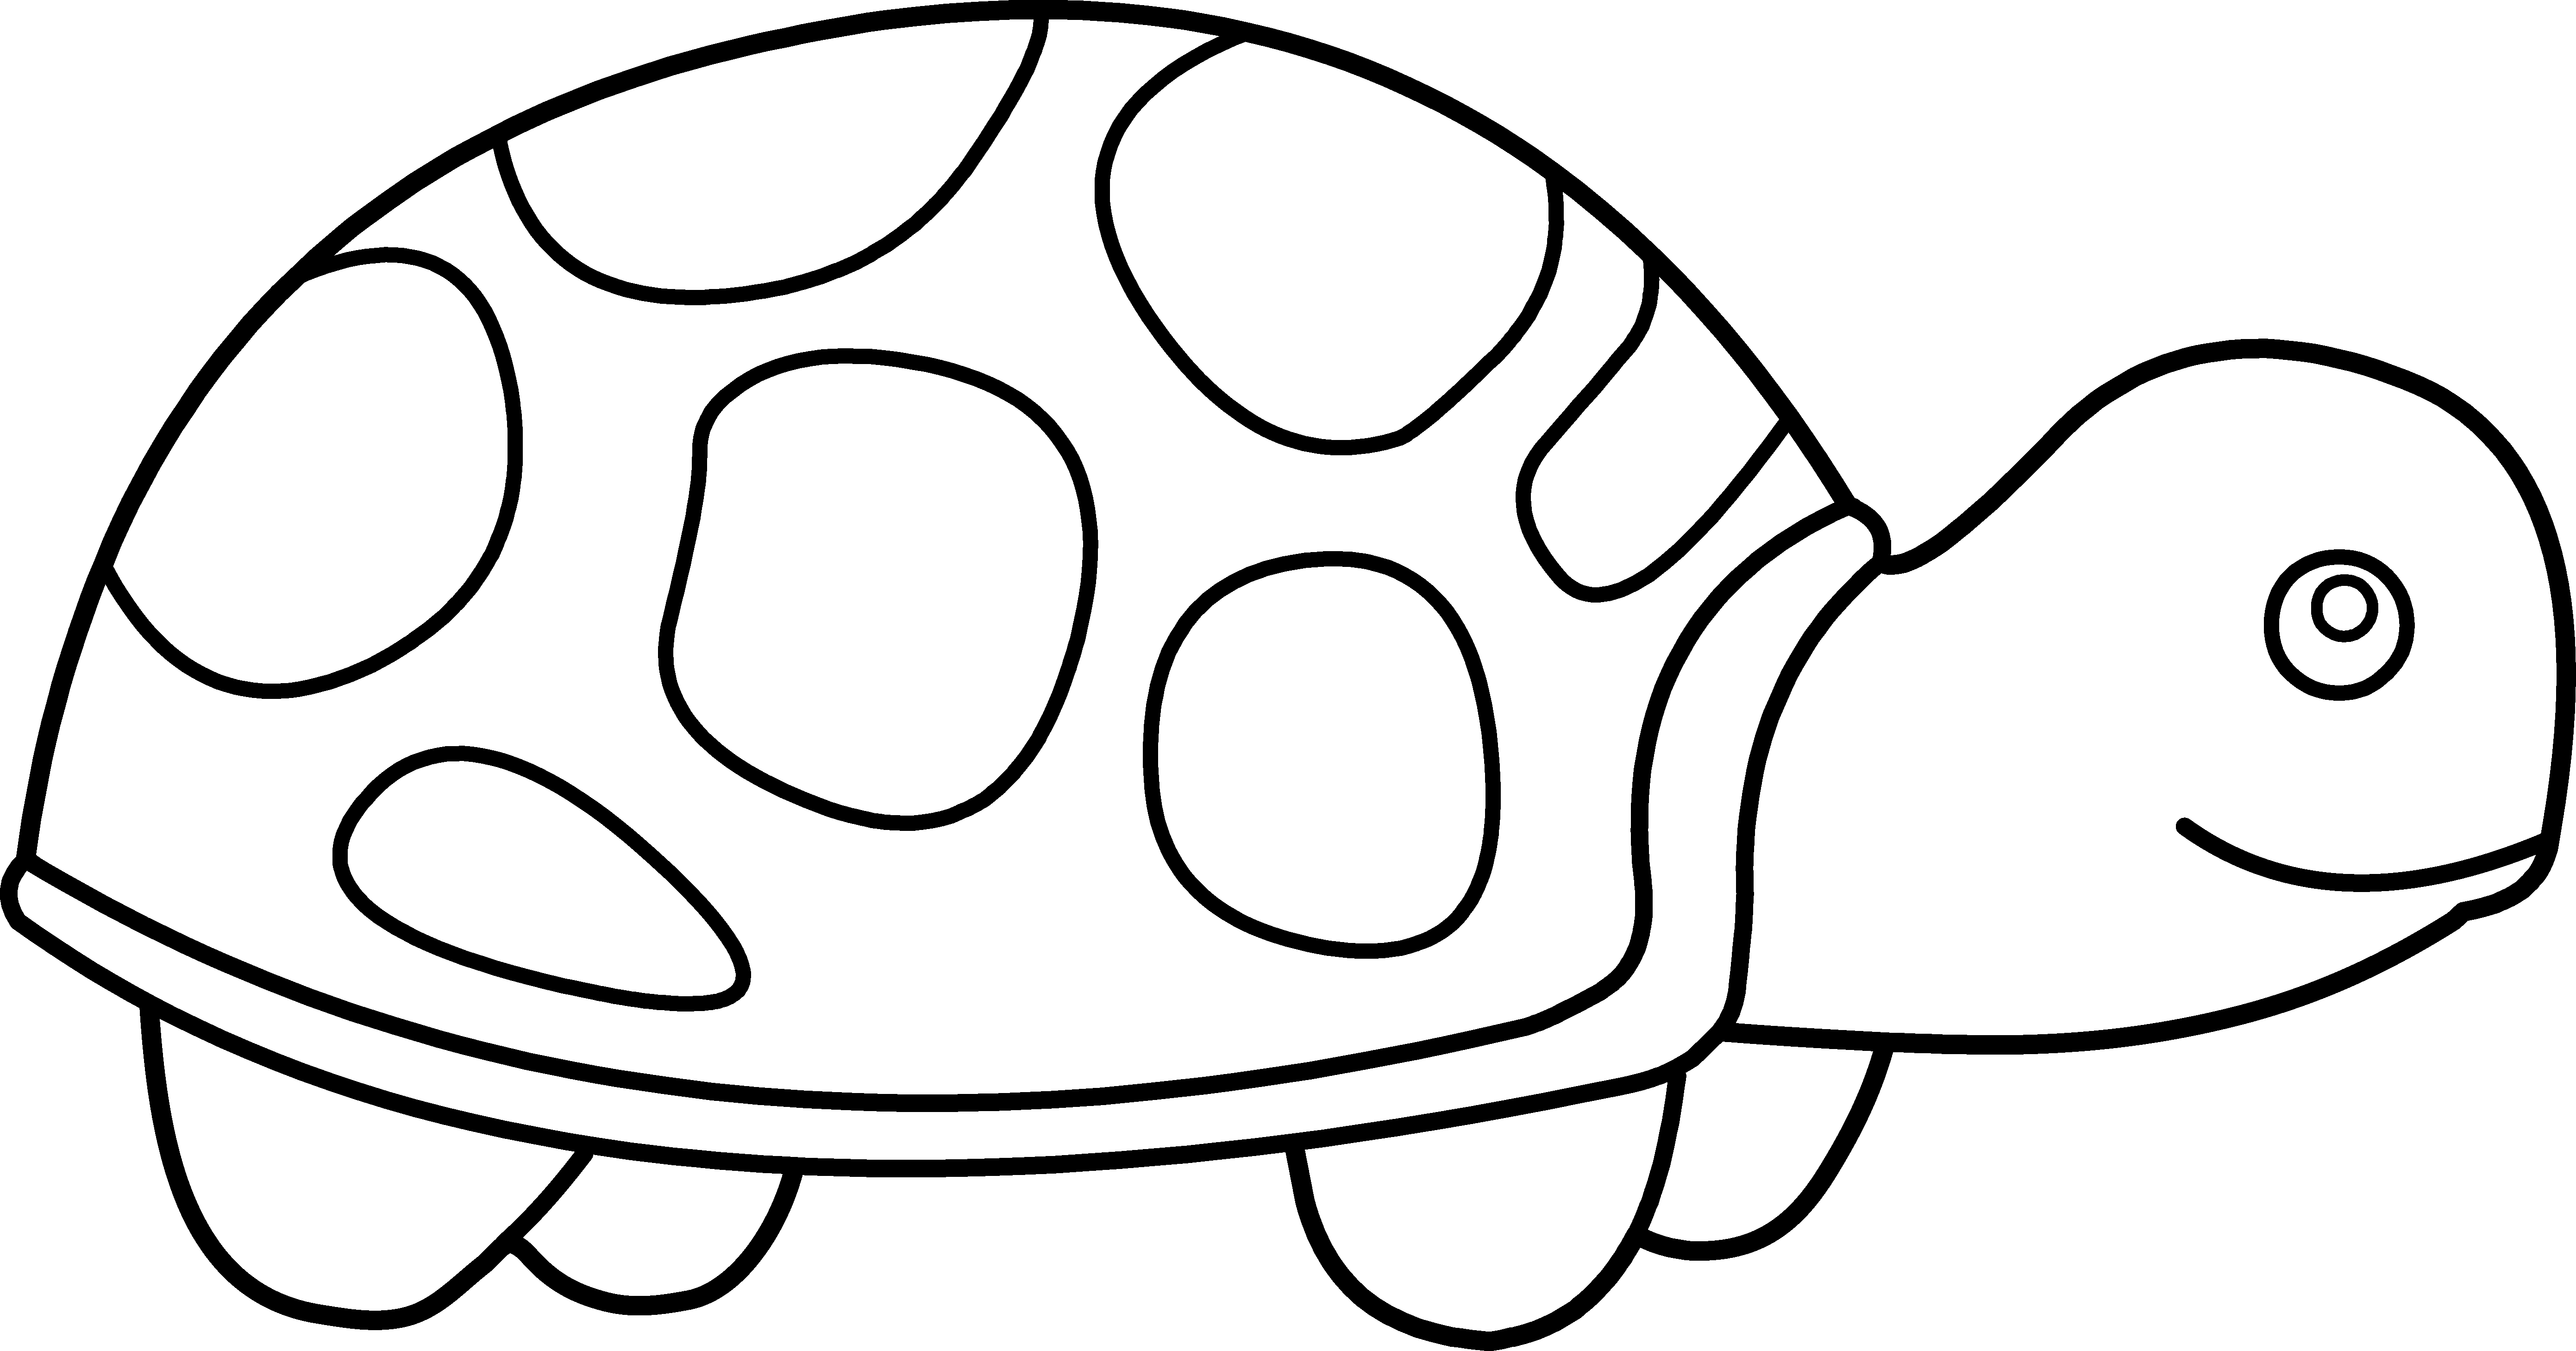 image library download Respect clipart black and white. Png pets transparent images